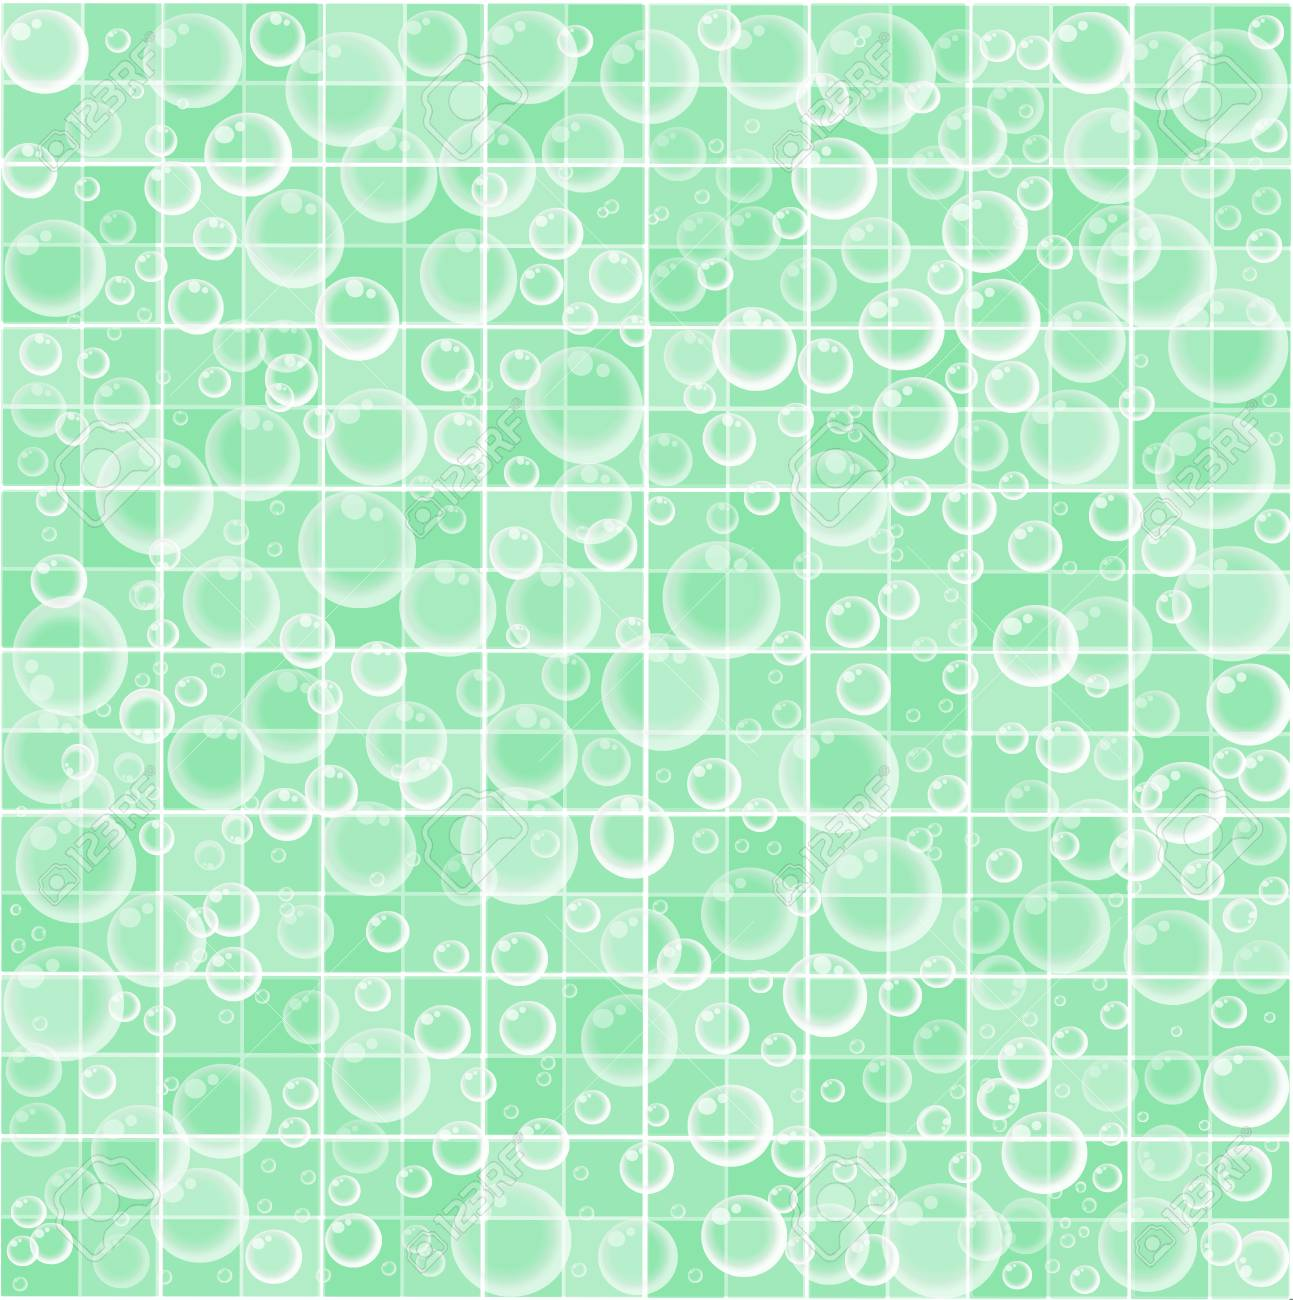 Cute Baby Cartoon Wallpaper With Floating Bubbles On Light Green